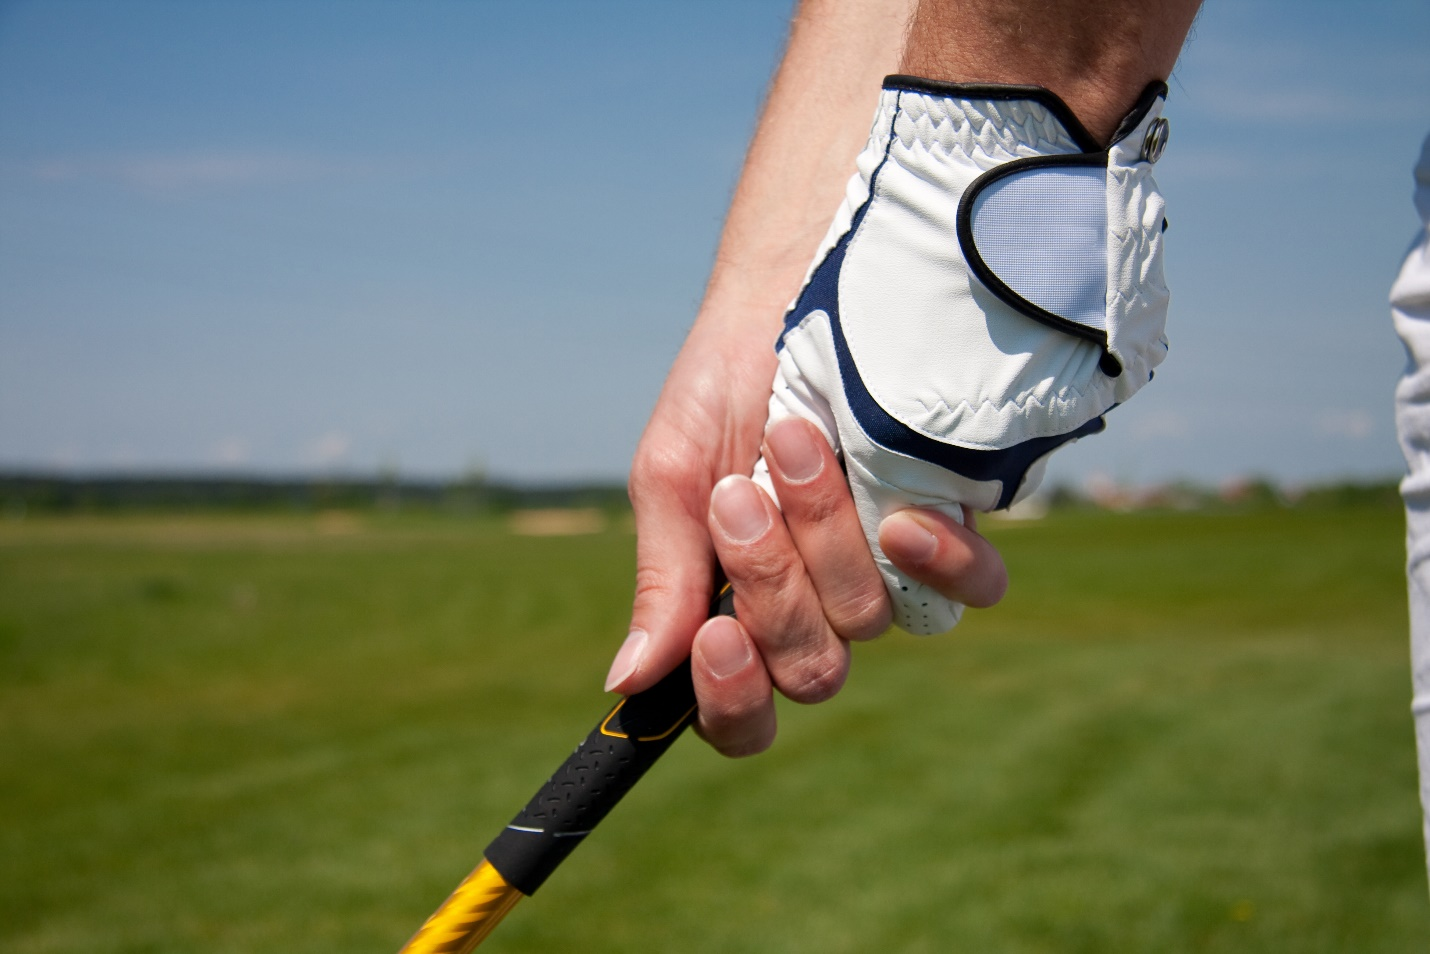 The interlocking grip in golf.